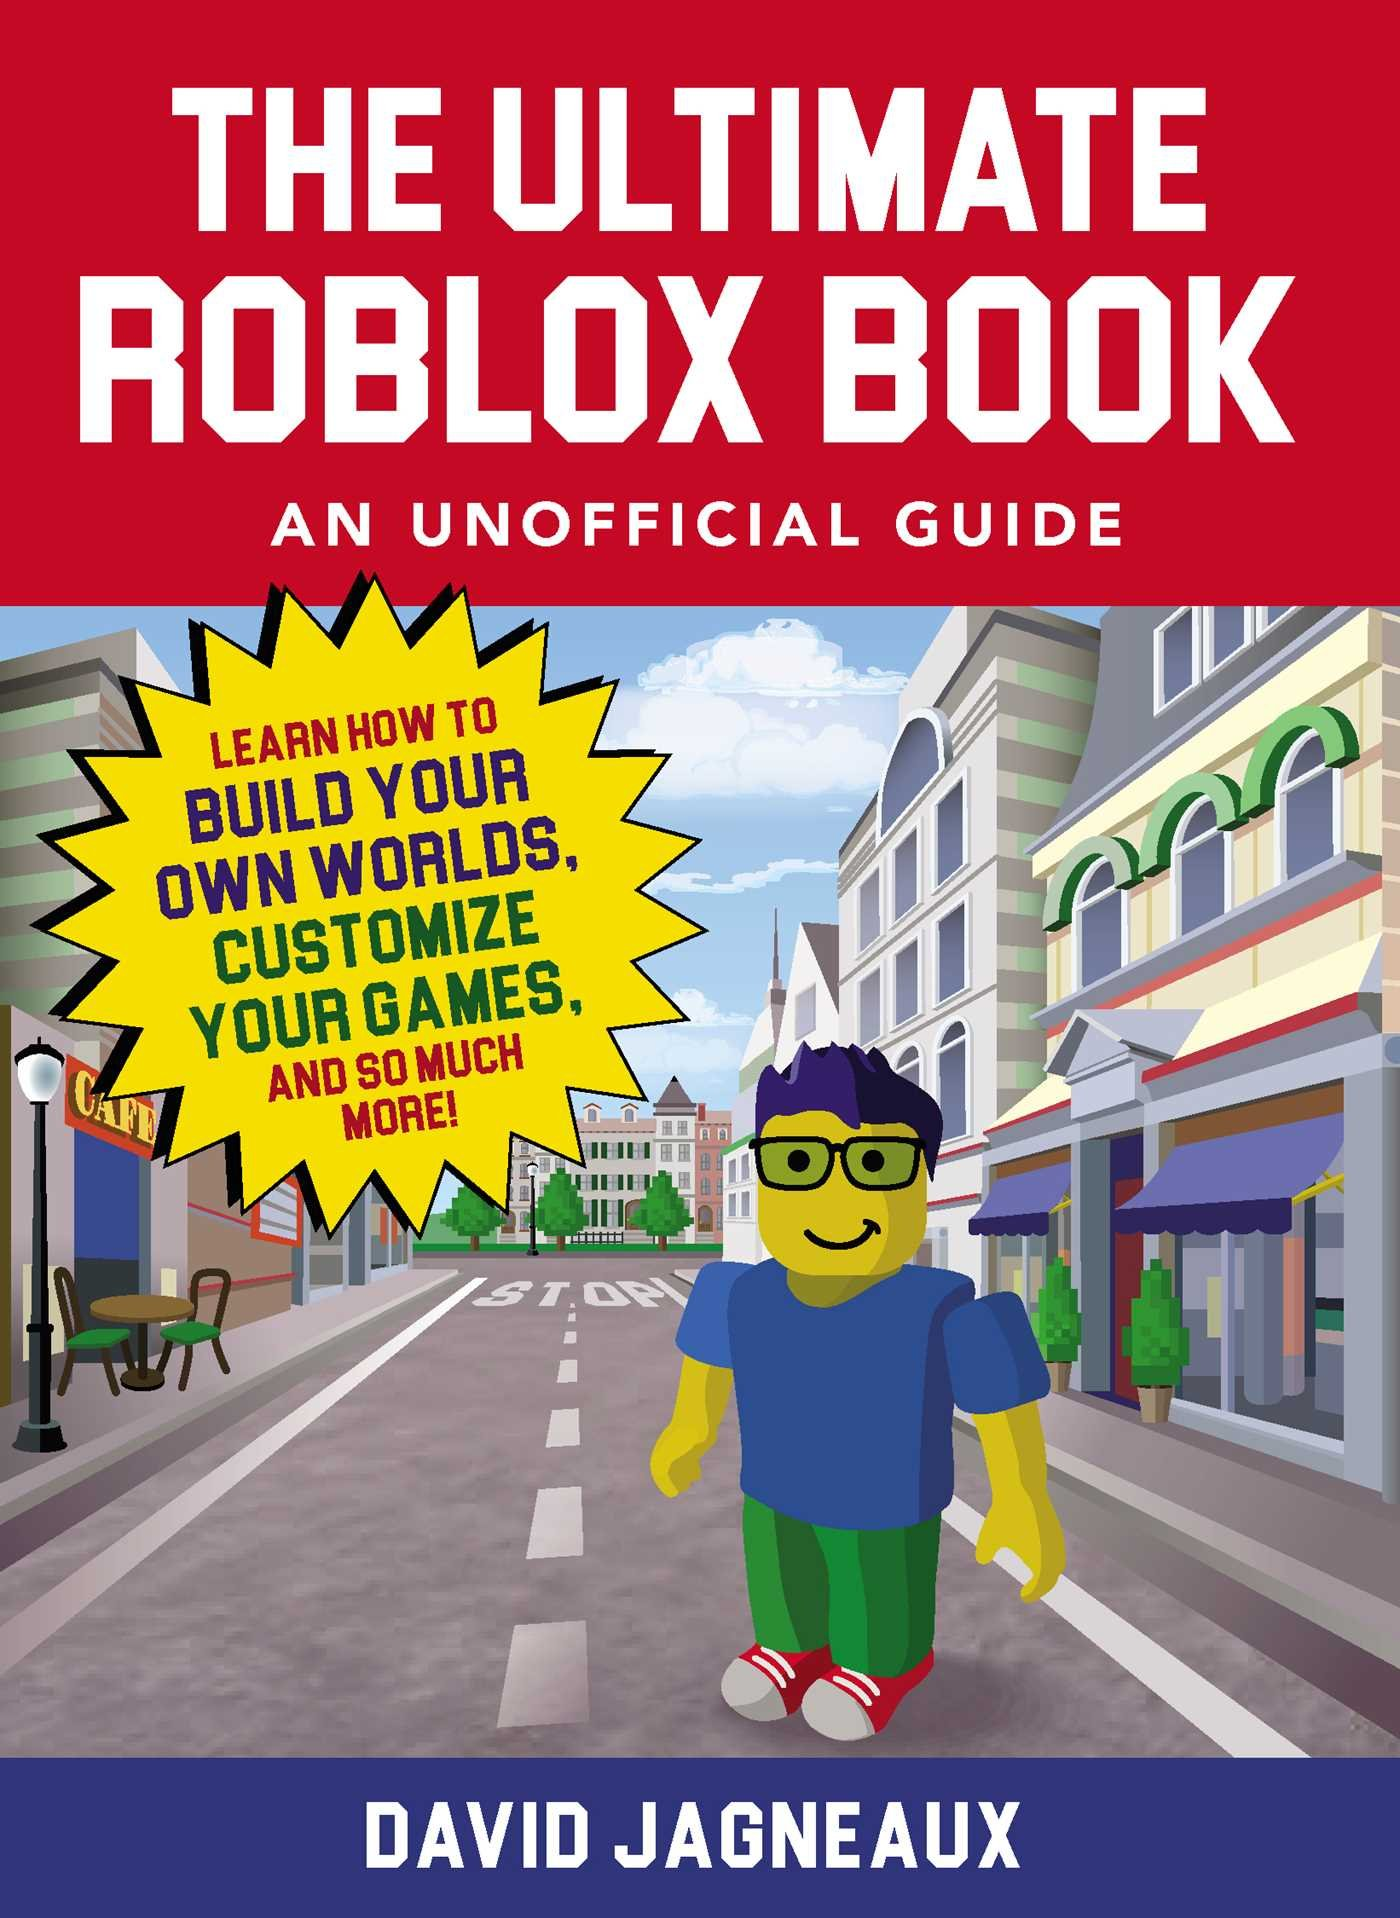 Roblox How To Make In Game Currency Amazon Com The Ultimate Roblox Book An Unofficial Guide Learn How To Build Your Own Worlds Customize Your Games And So Much More Unofficial Roblox 9781507205334 Jagneaux David Books